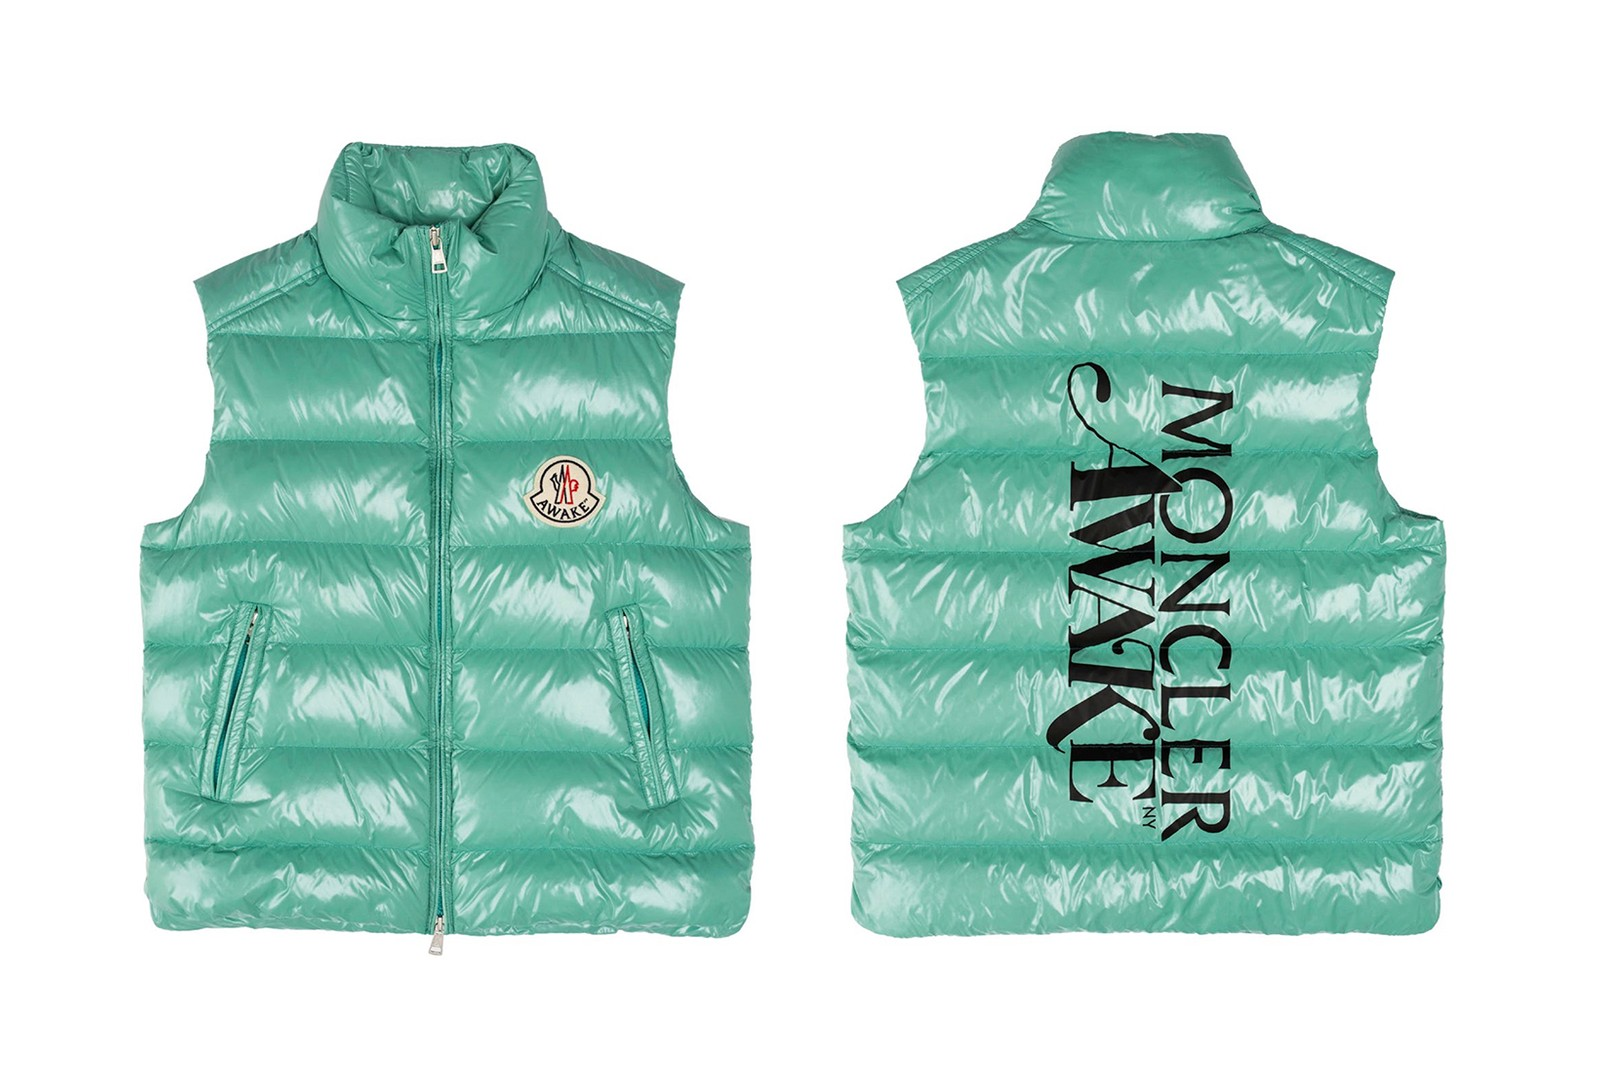 Awake NY x Moncler Collaboration Collection Lookbook